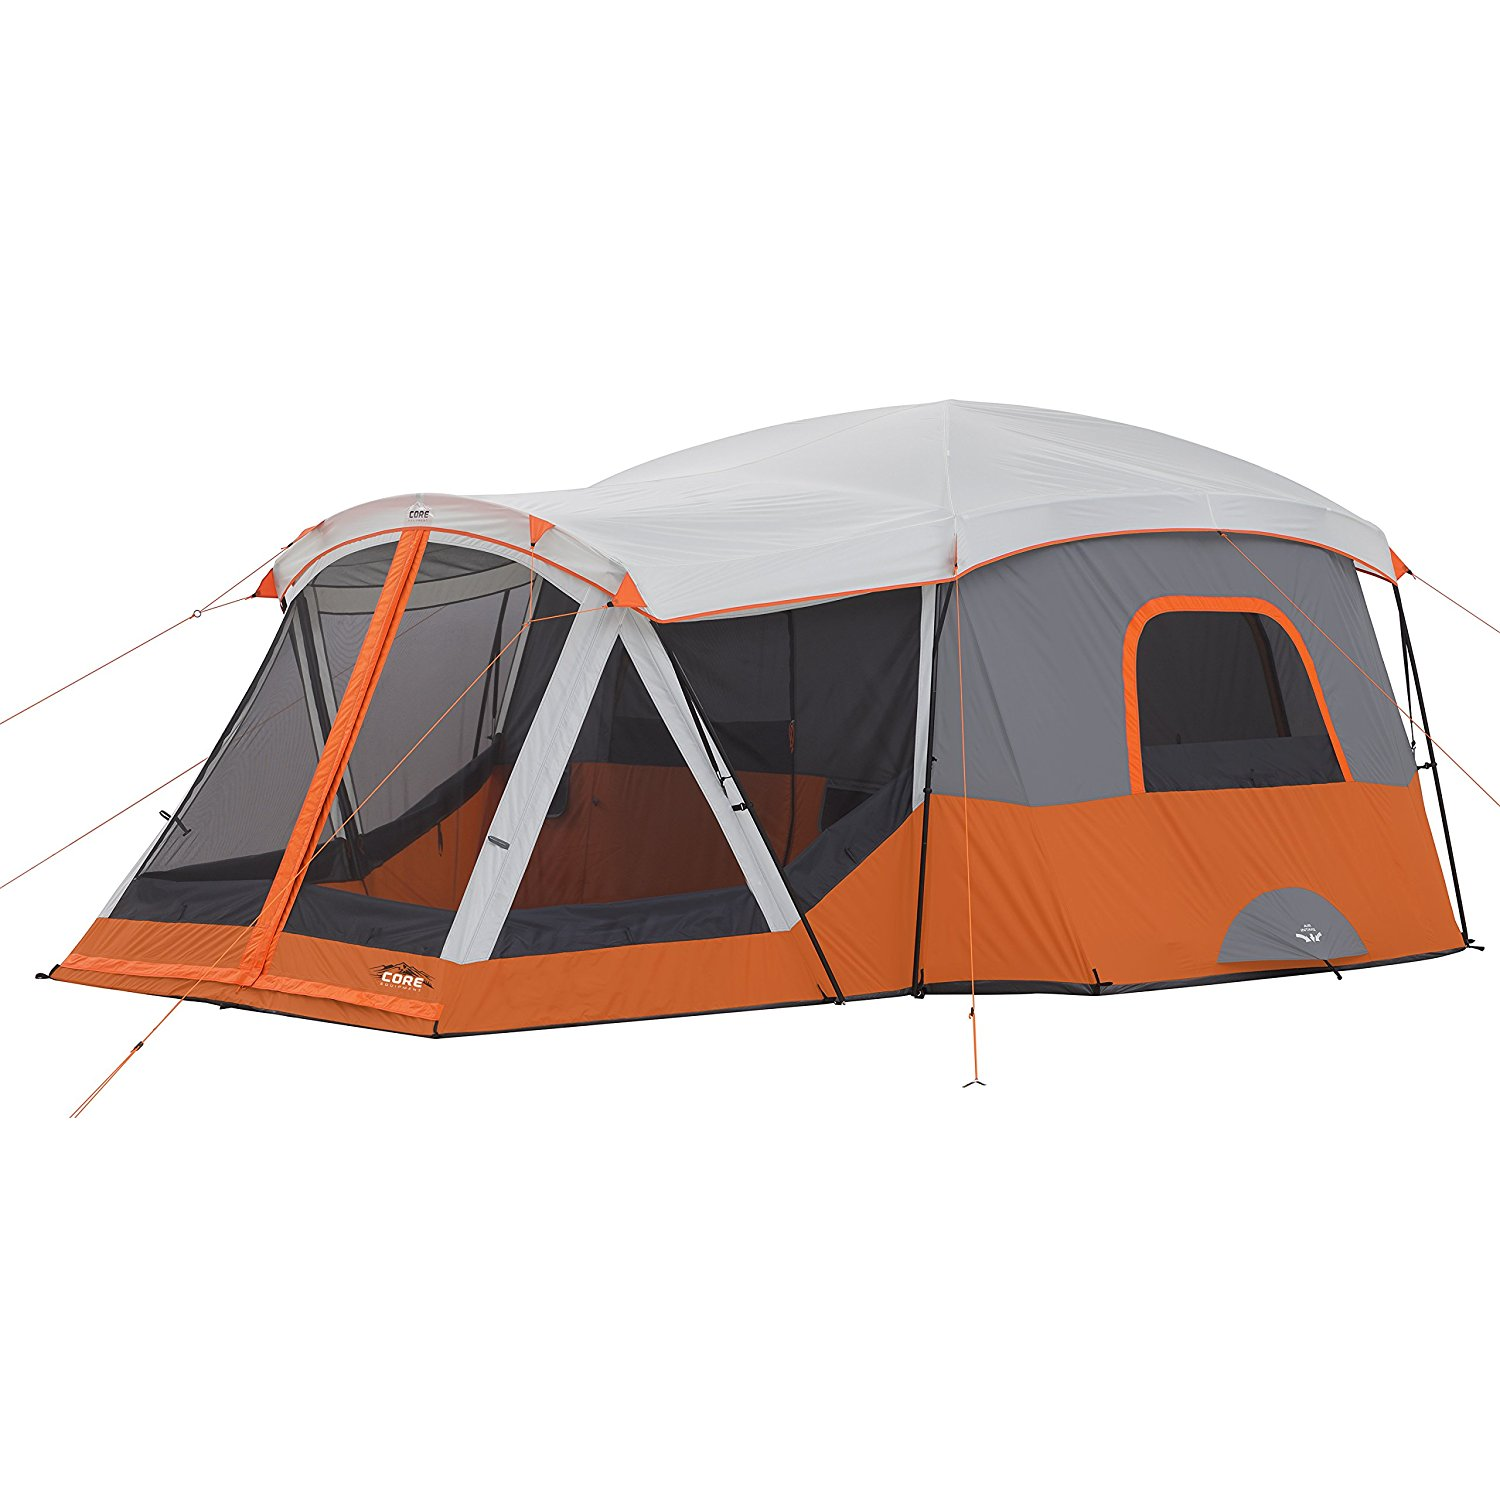 11-person Tent